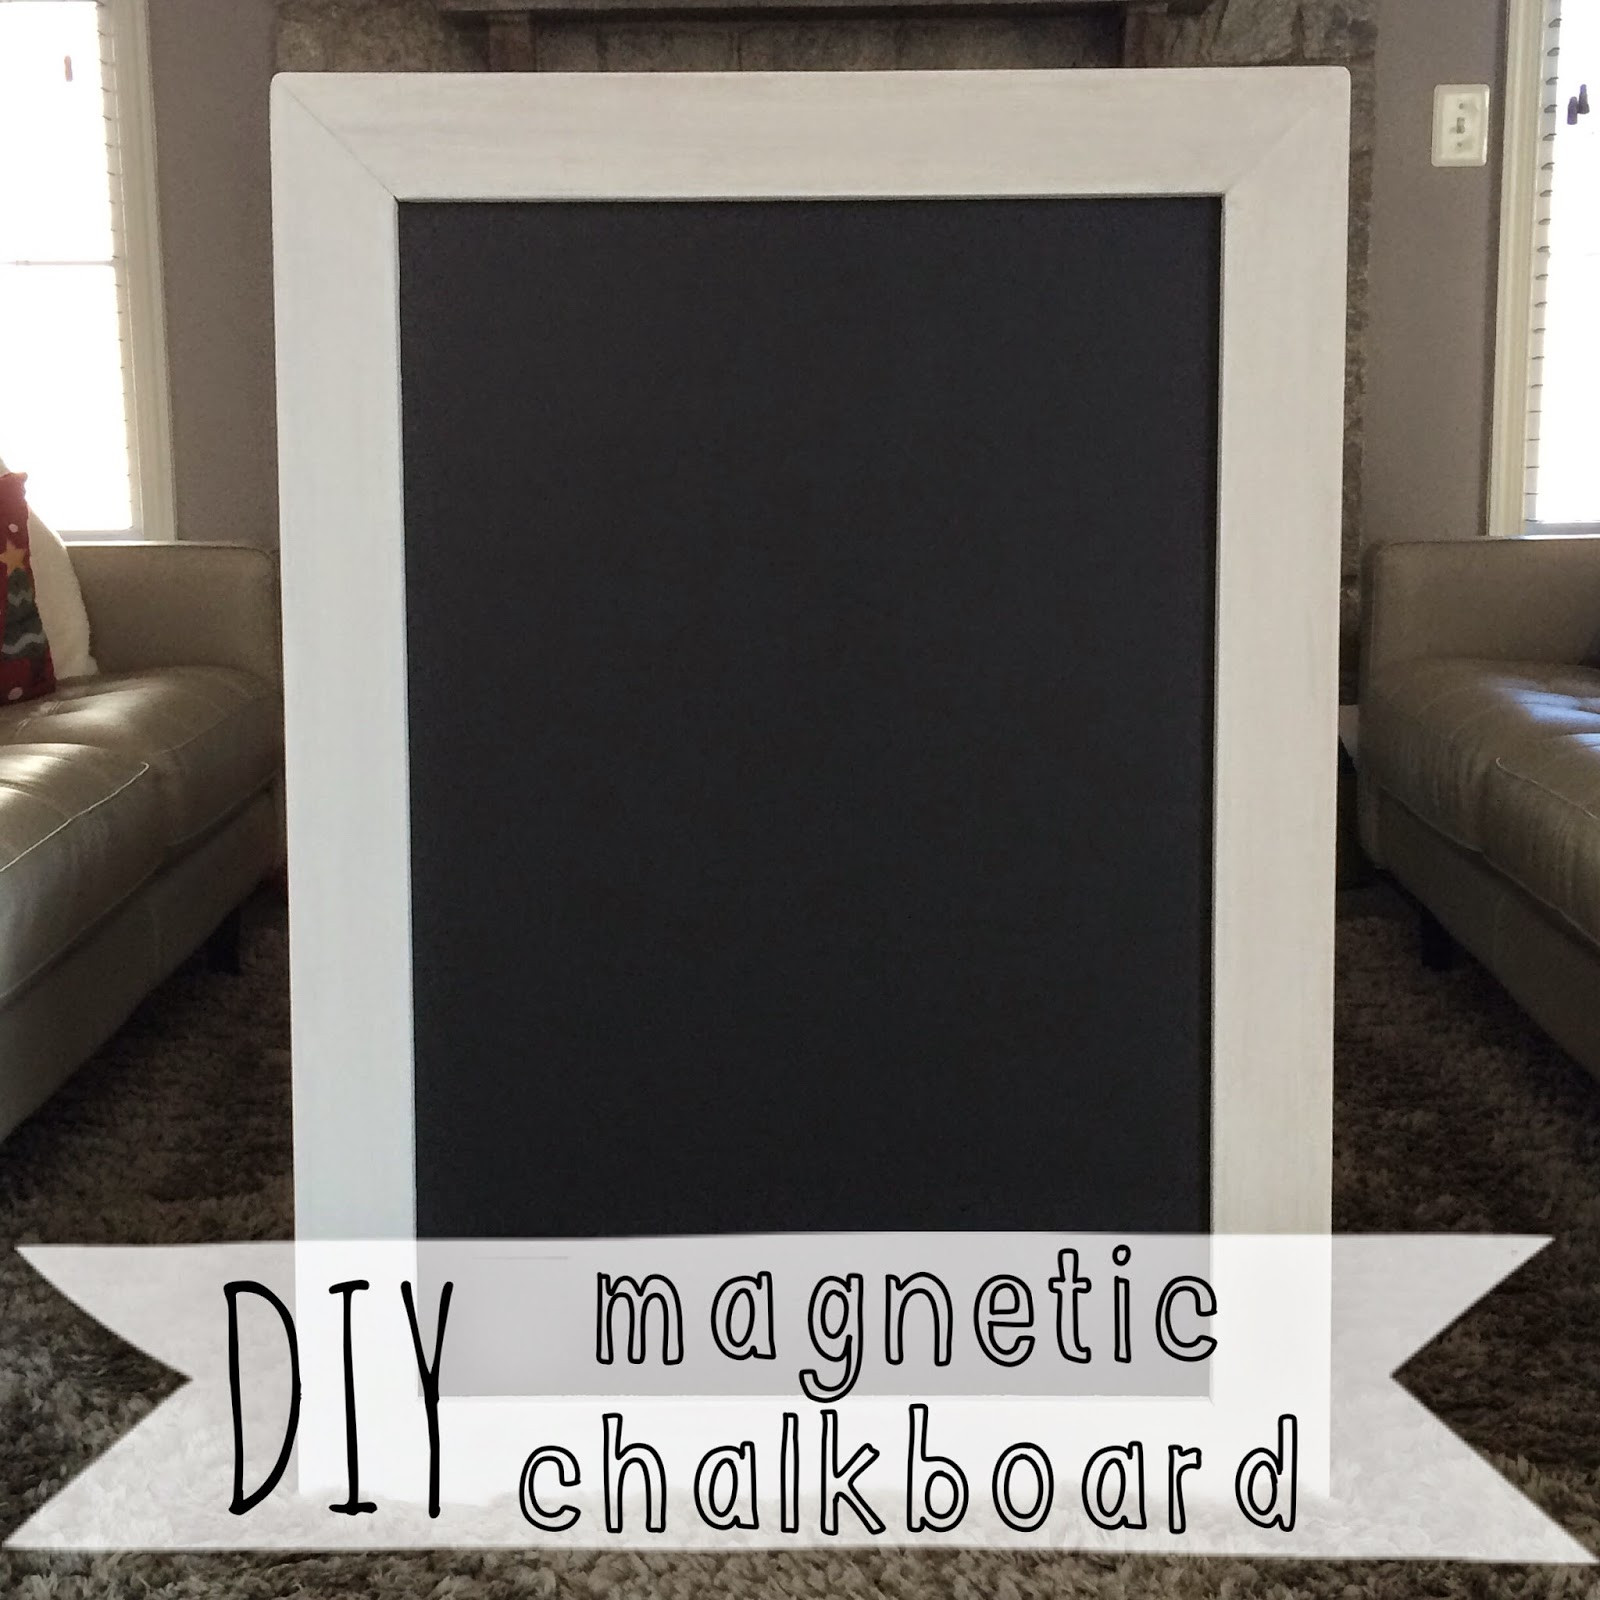 Best ideas about DIY Magnetic Chalkboard . Save or Pin LeroyLime DIY Magnetic Chalkboard Now.